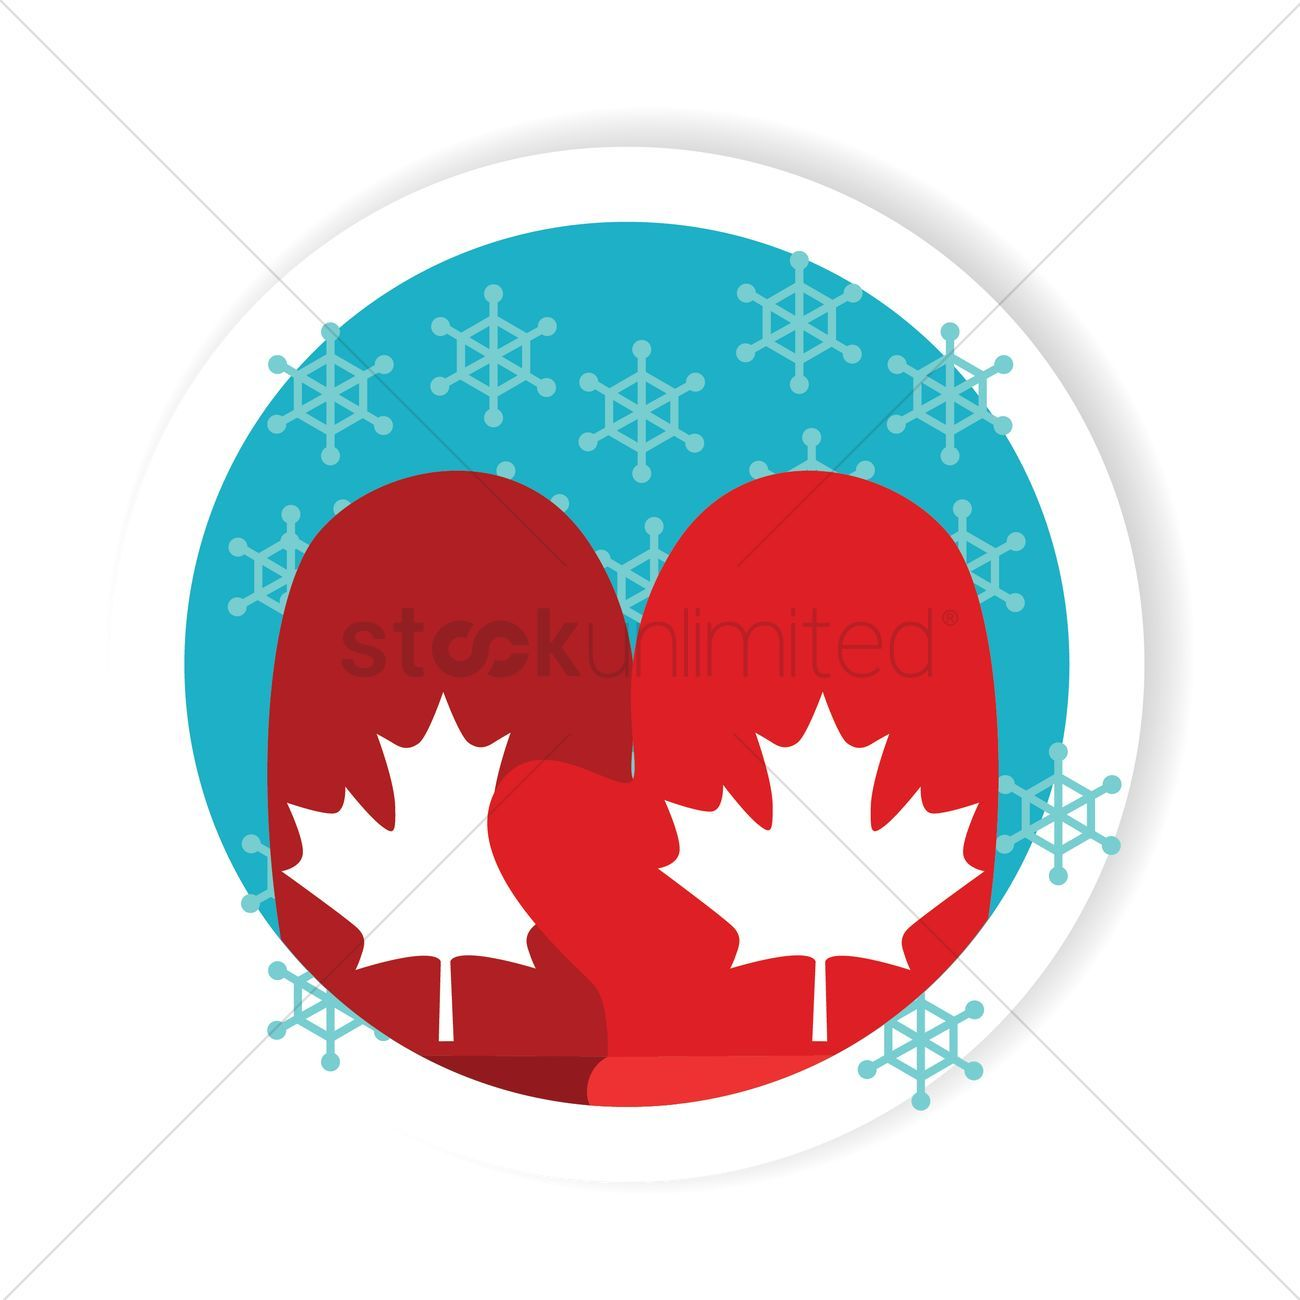 Pair Of Knitted Christmas Mittens Isolated On White Background. Winter  Gloves Icon In Flat Style. Stock Vector - Illustration of snow, flat:  133029520